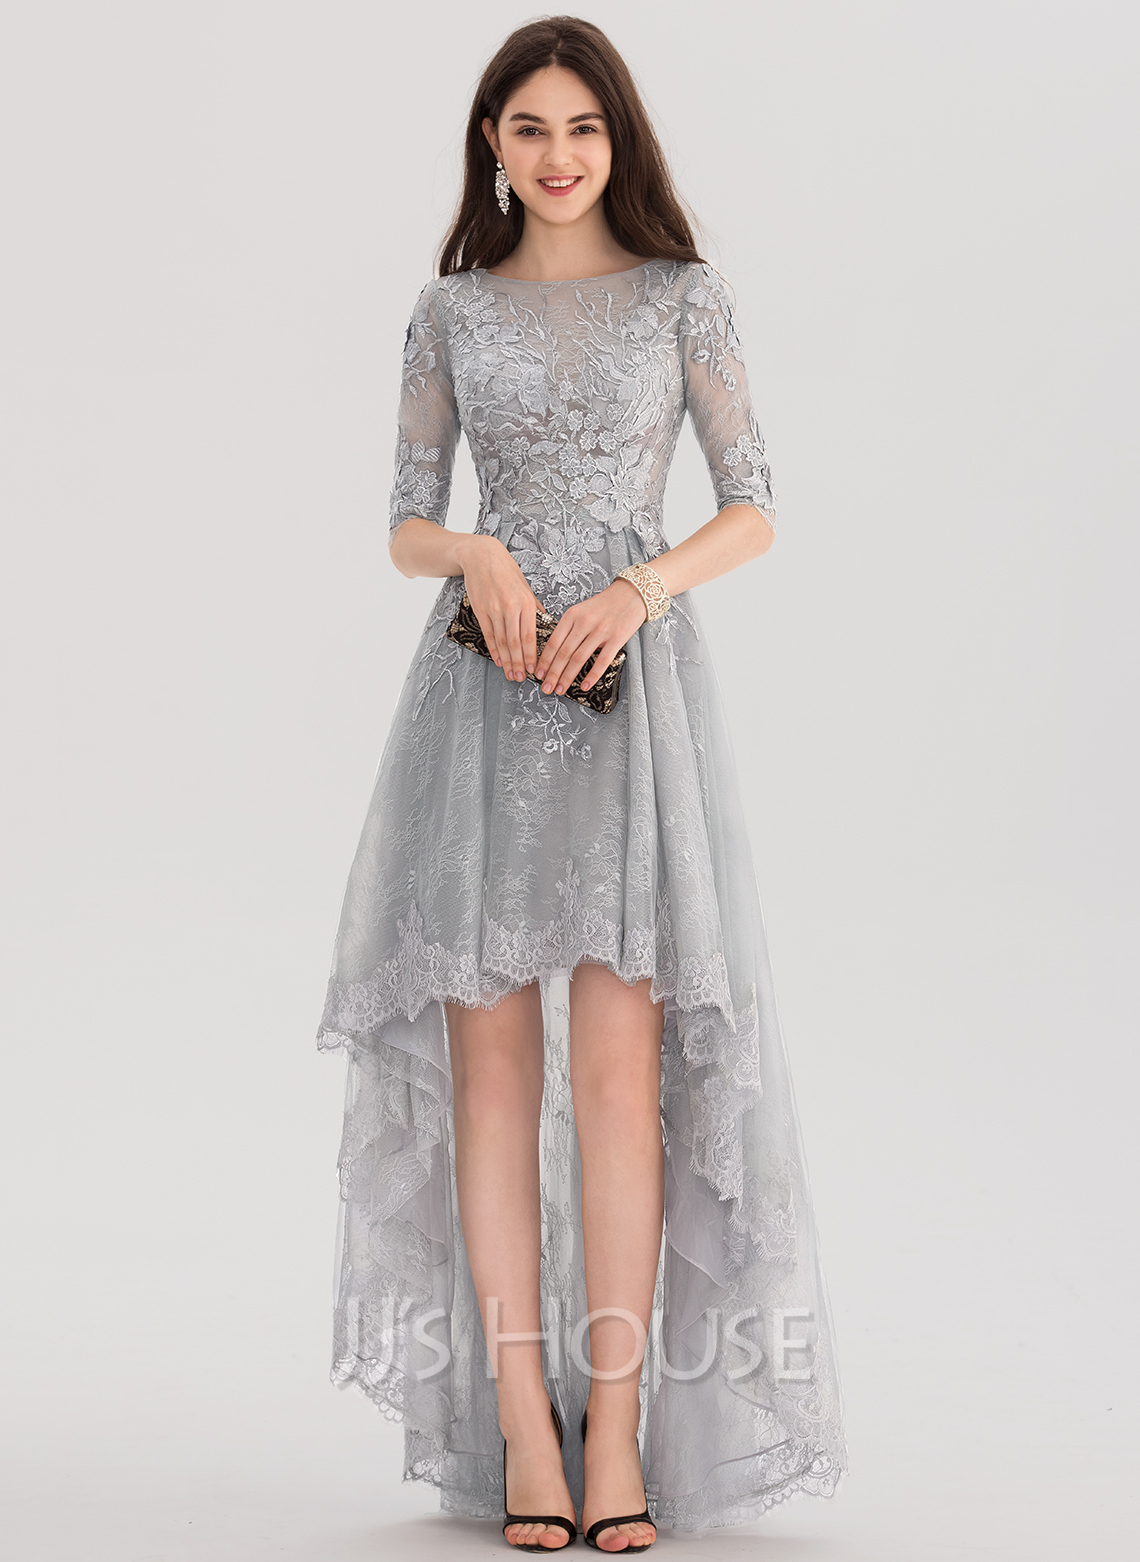 Scoop Neck Asymmetrical Tulle Lace Prom Dresses